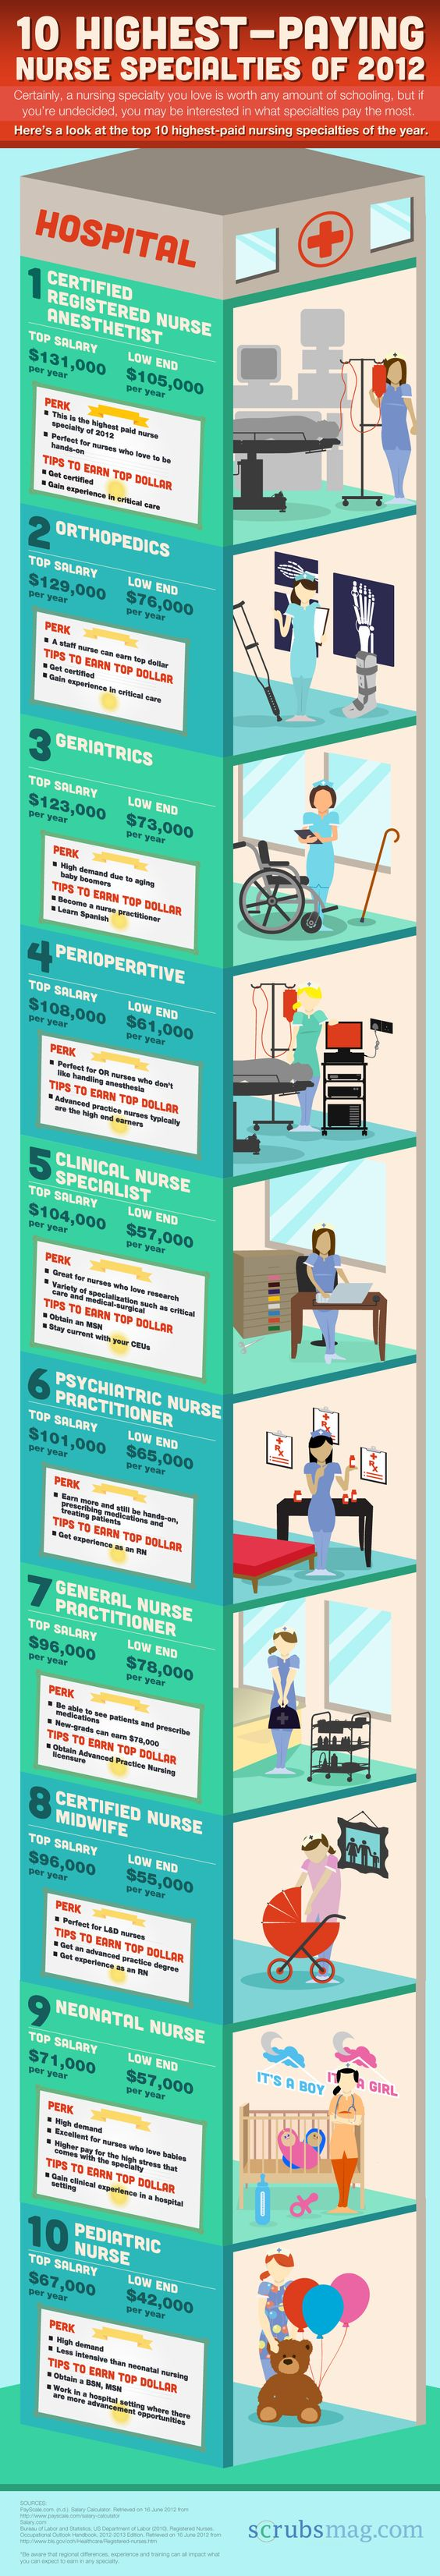 [Infographic] Highest Paying Nurse Specialties of 2012 #infographic #nurse